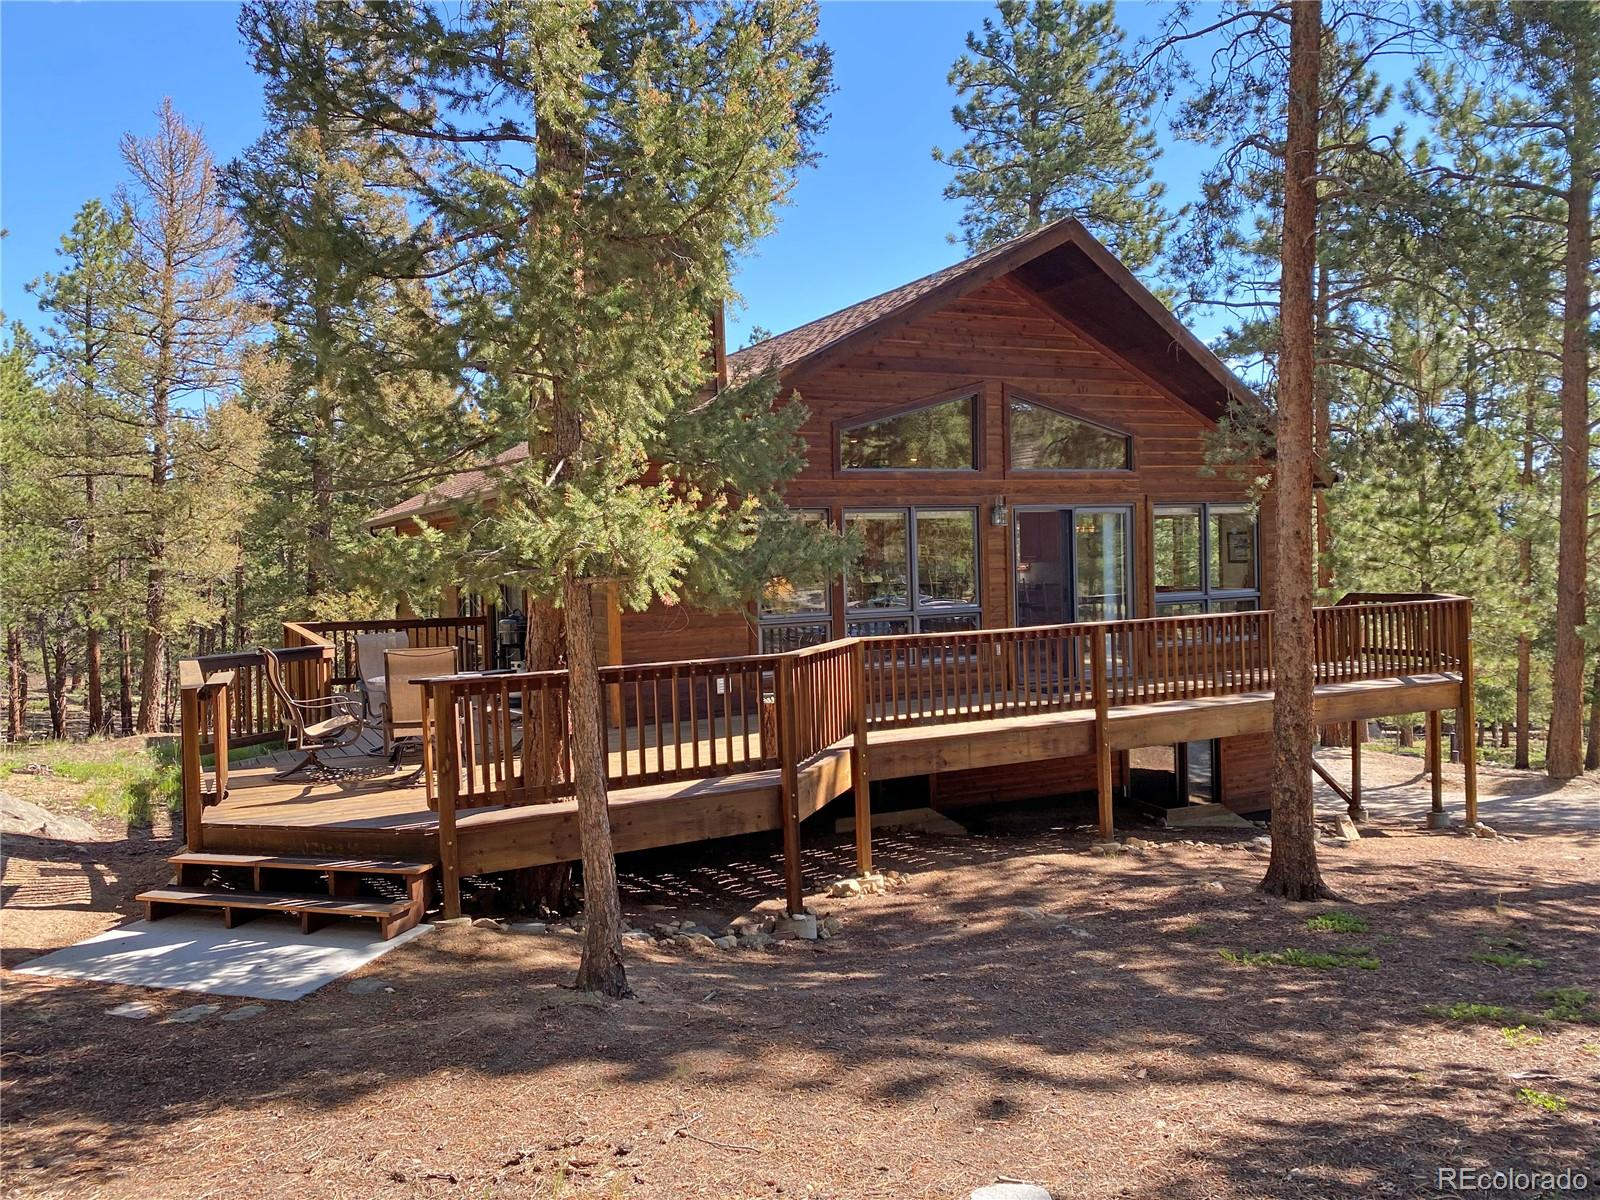 MLS# 7606361 - 1 - 30378 National Forest Drive, Buena Vista, CO 81211